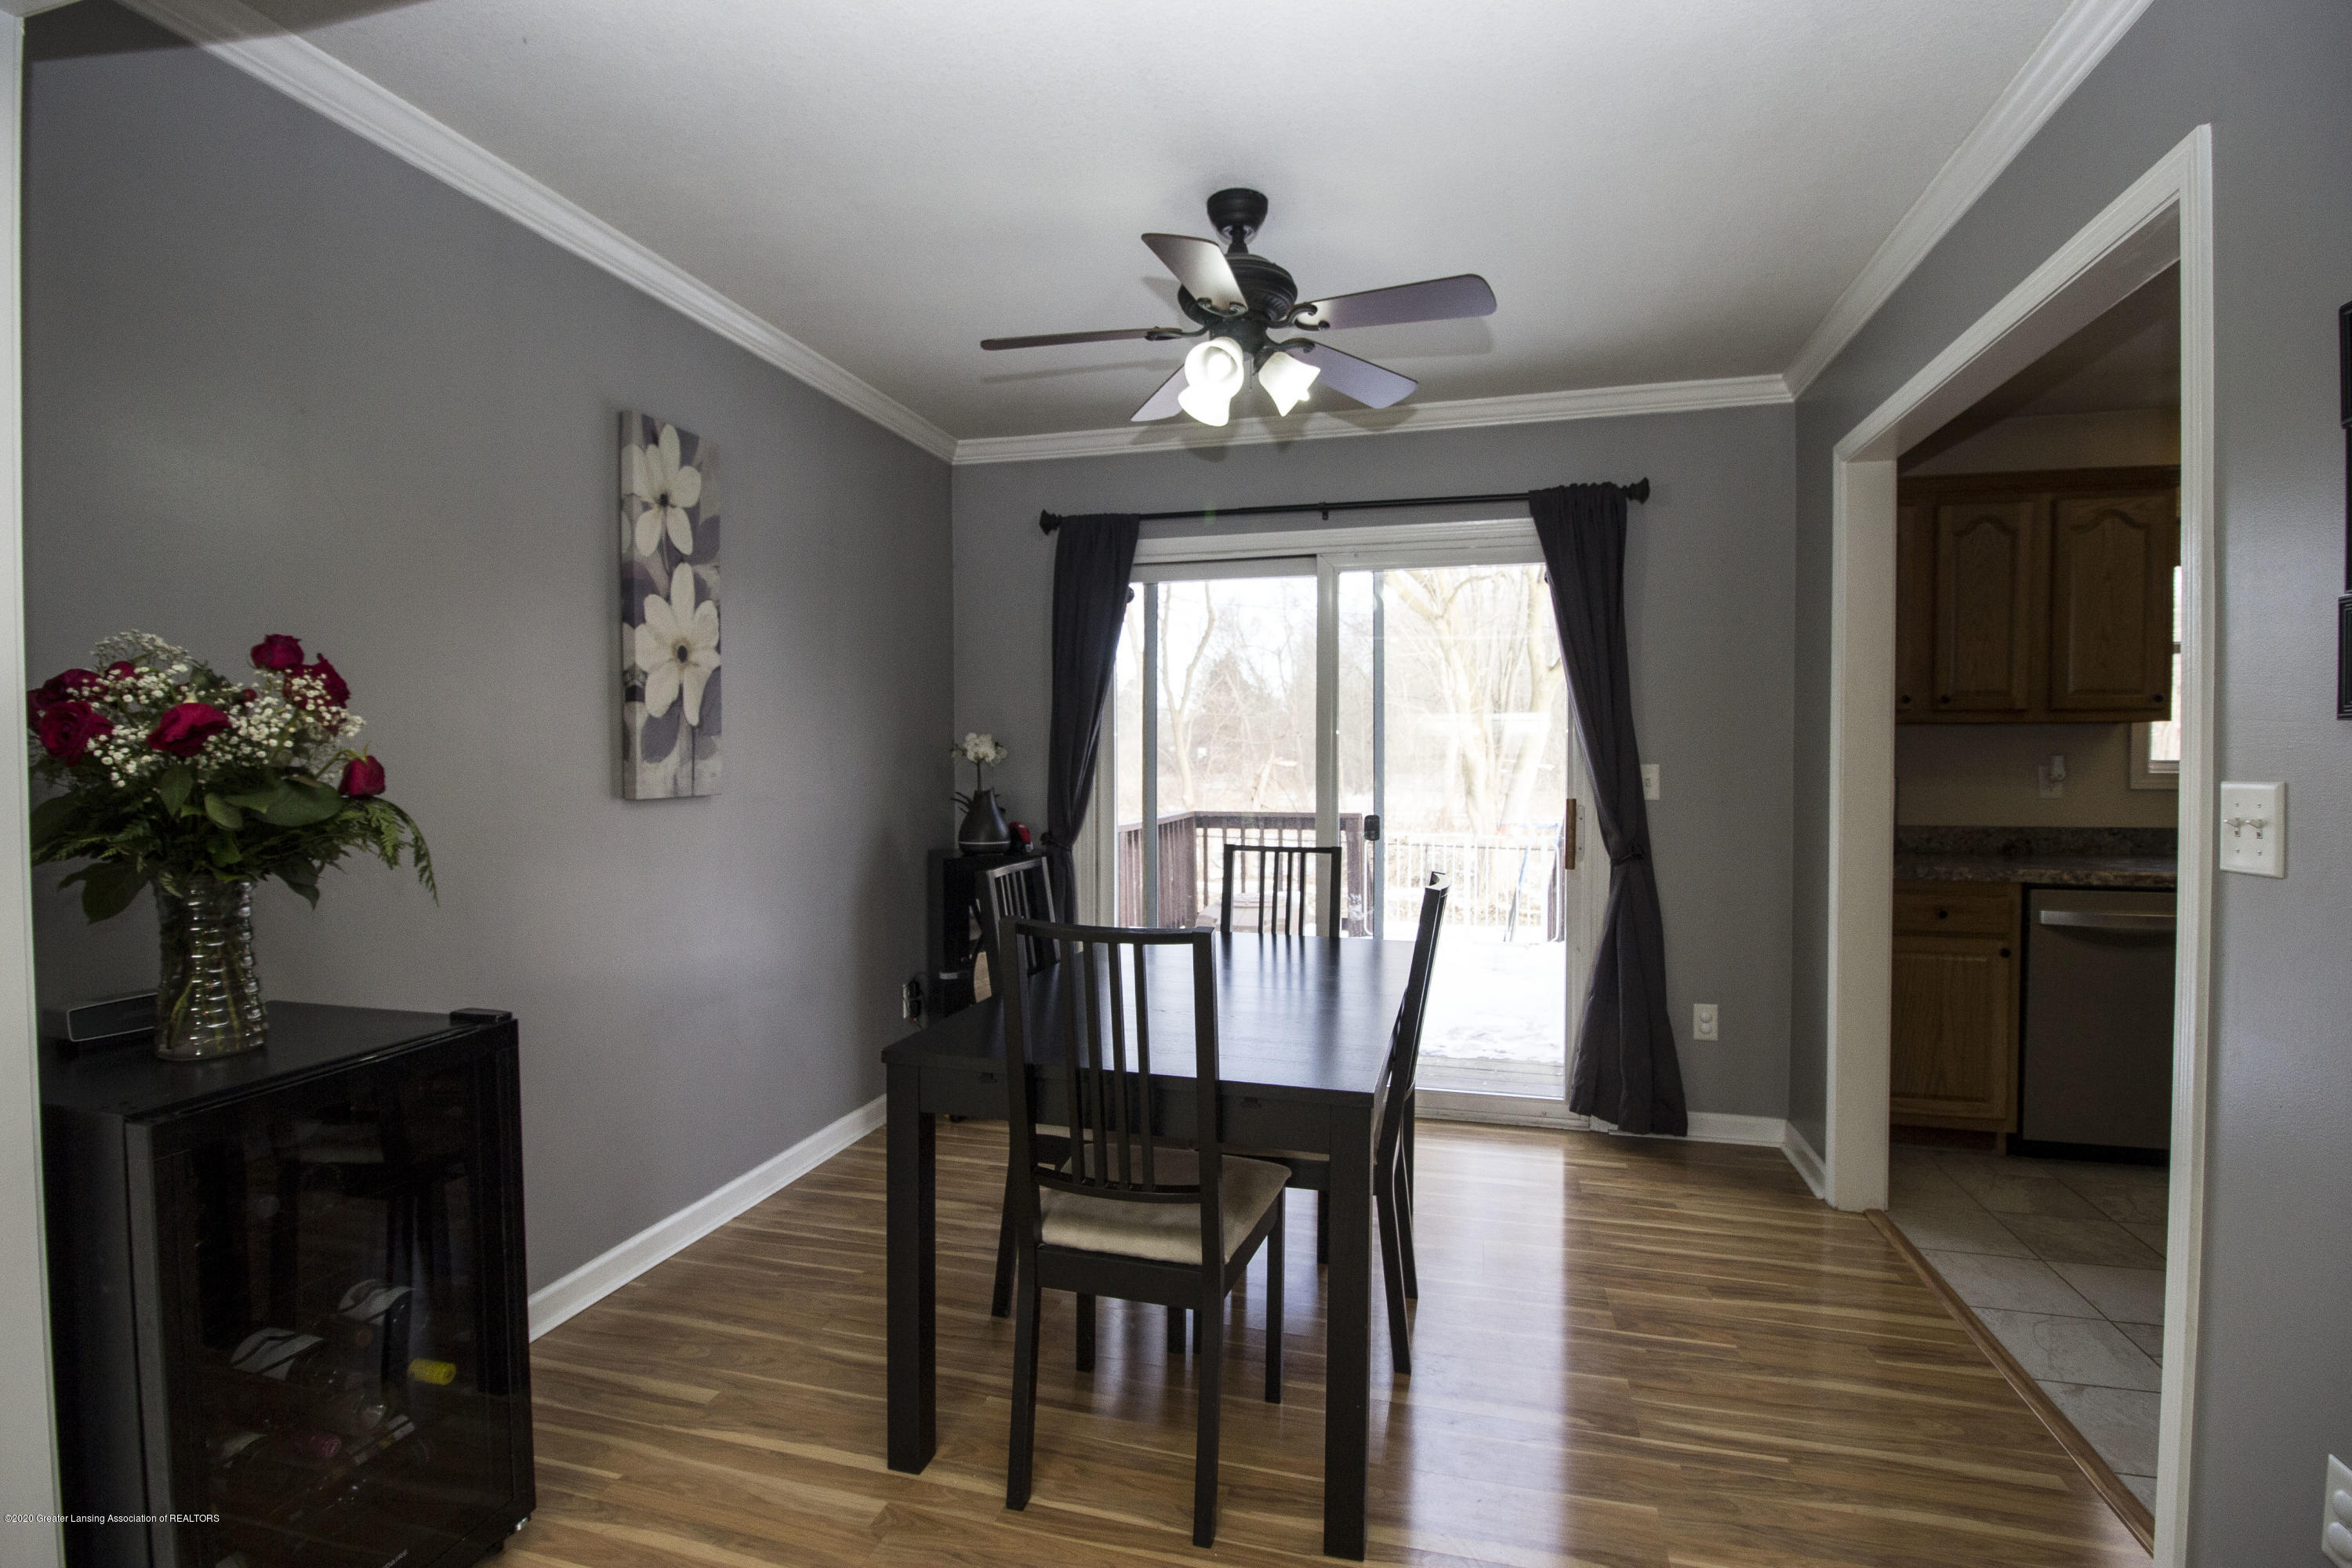 5498 Caplina Dr - Dining room 1 - 7